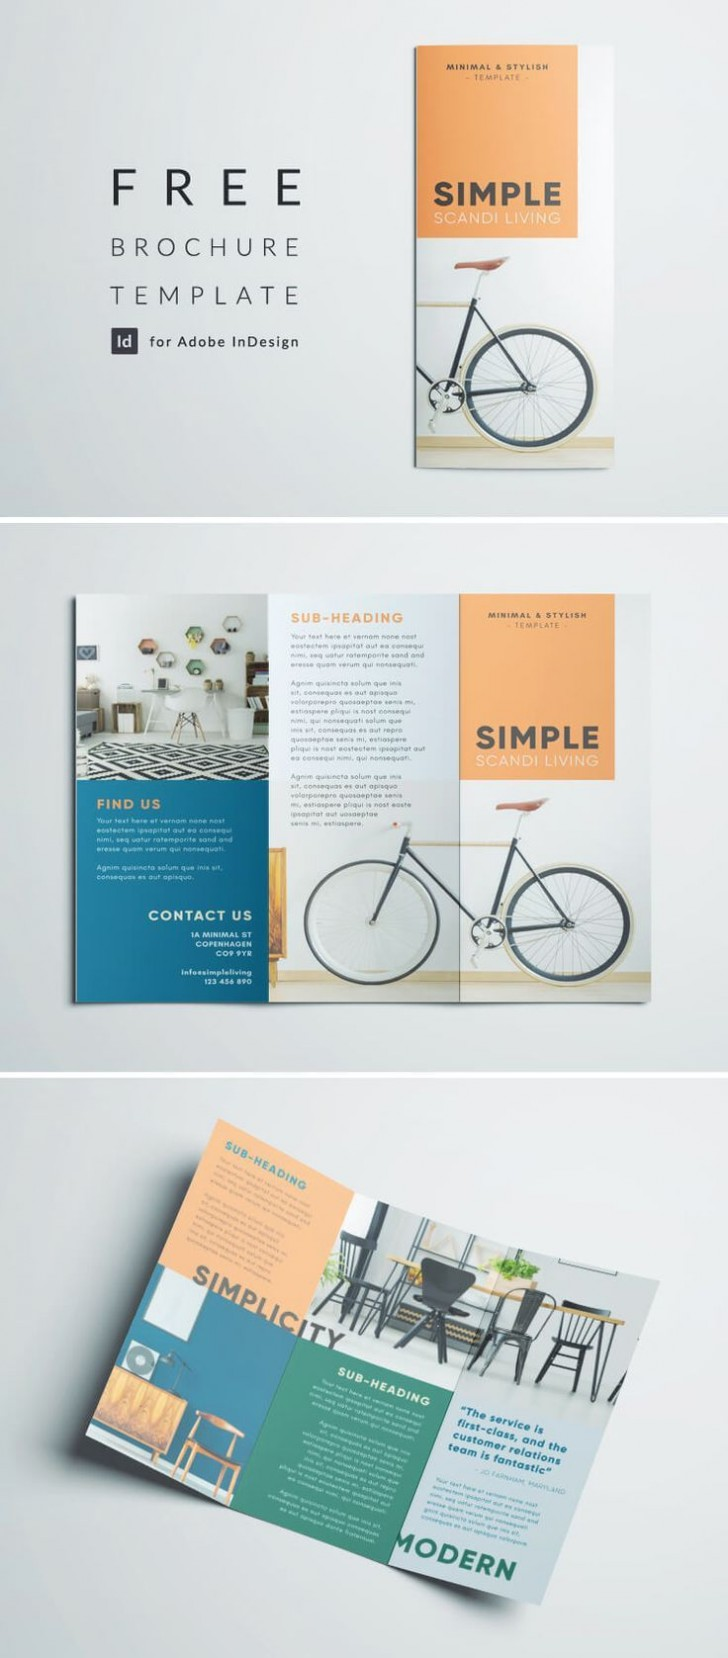 001 Unbelievable Indesign Tri Fold Brochure Template Image  Free Adobe 11x17728